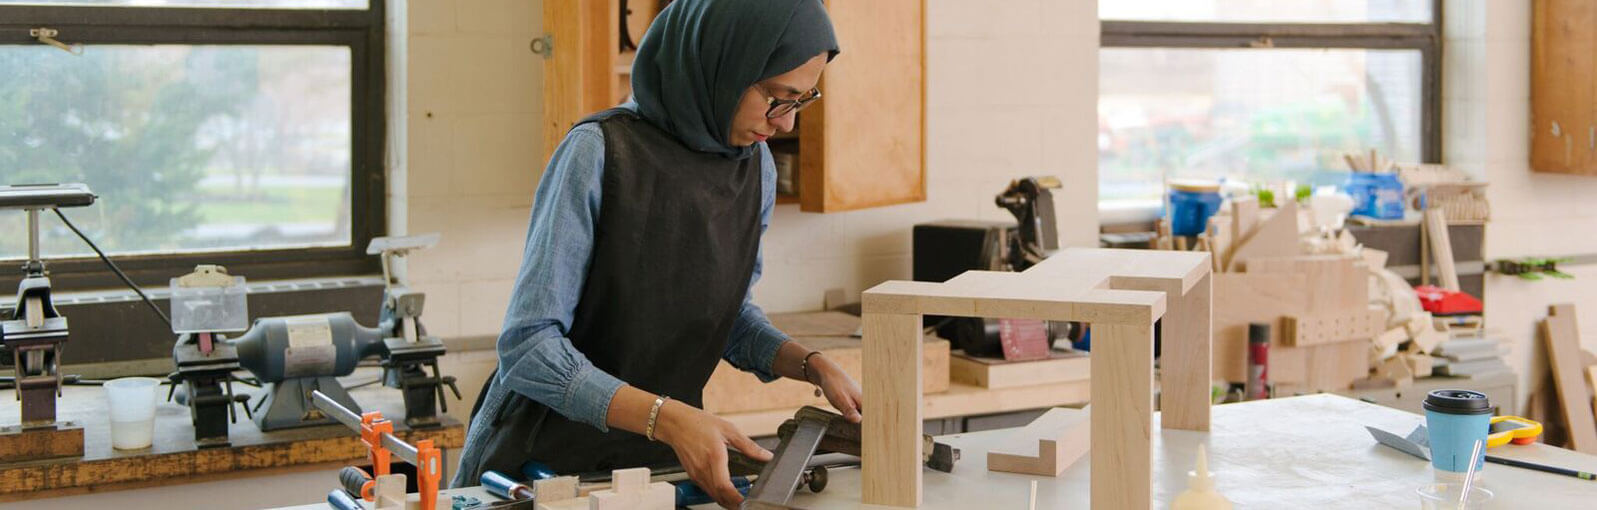 Student in a wood shop making something out of wood